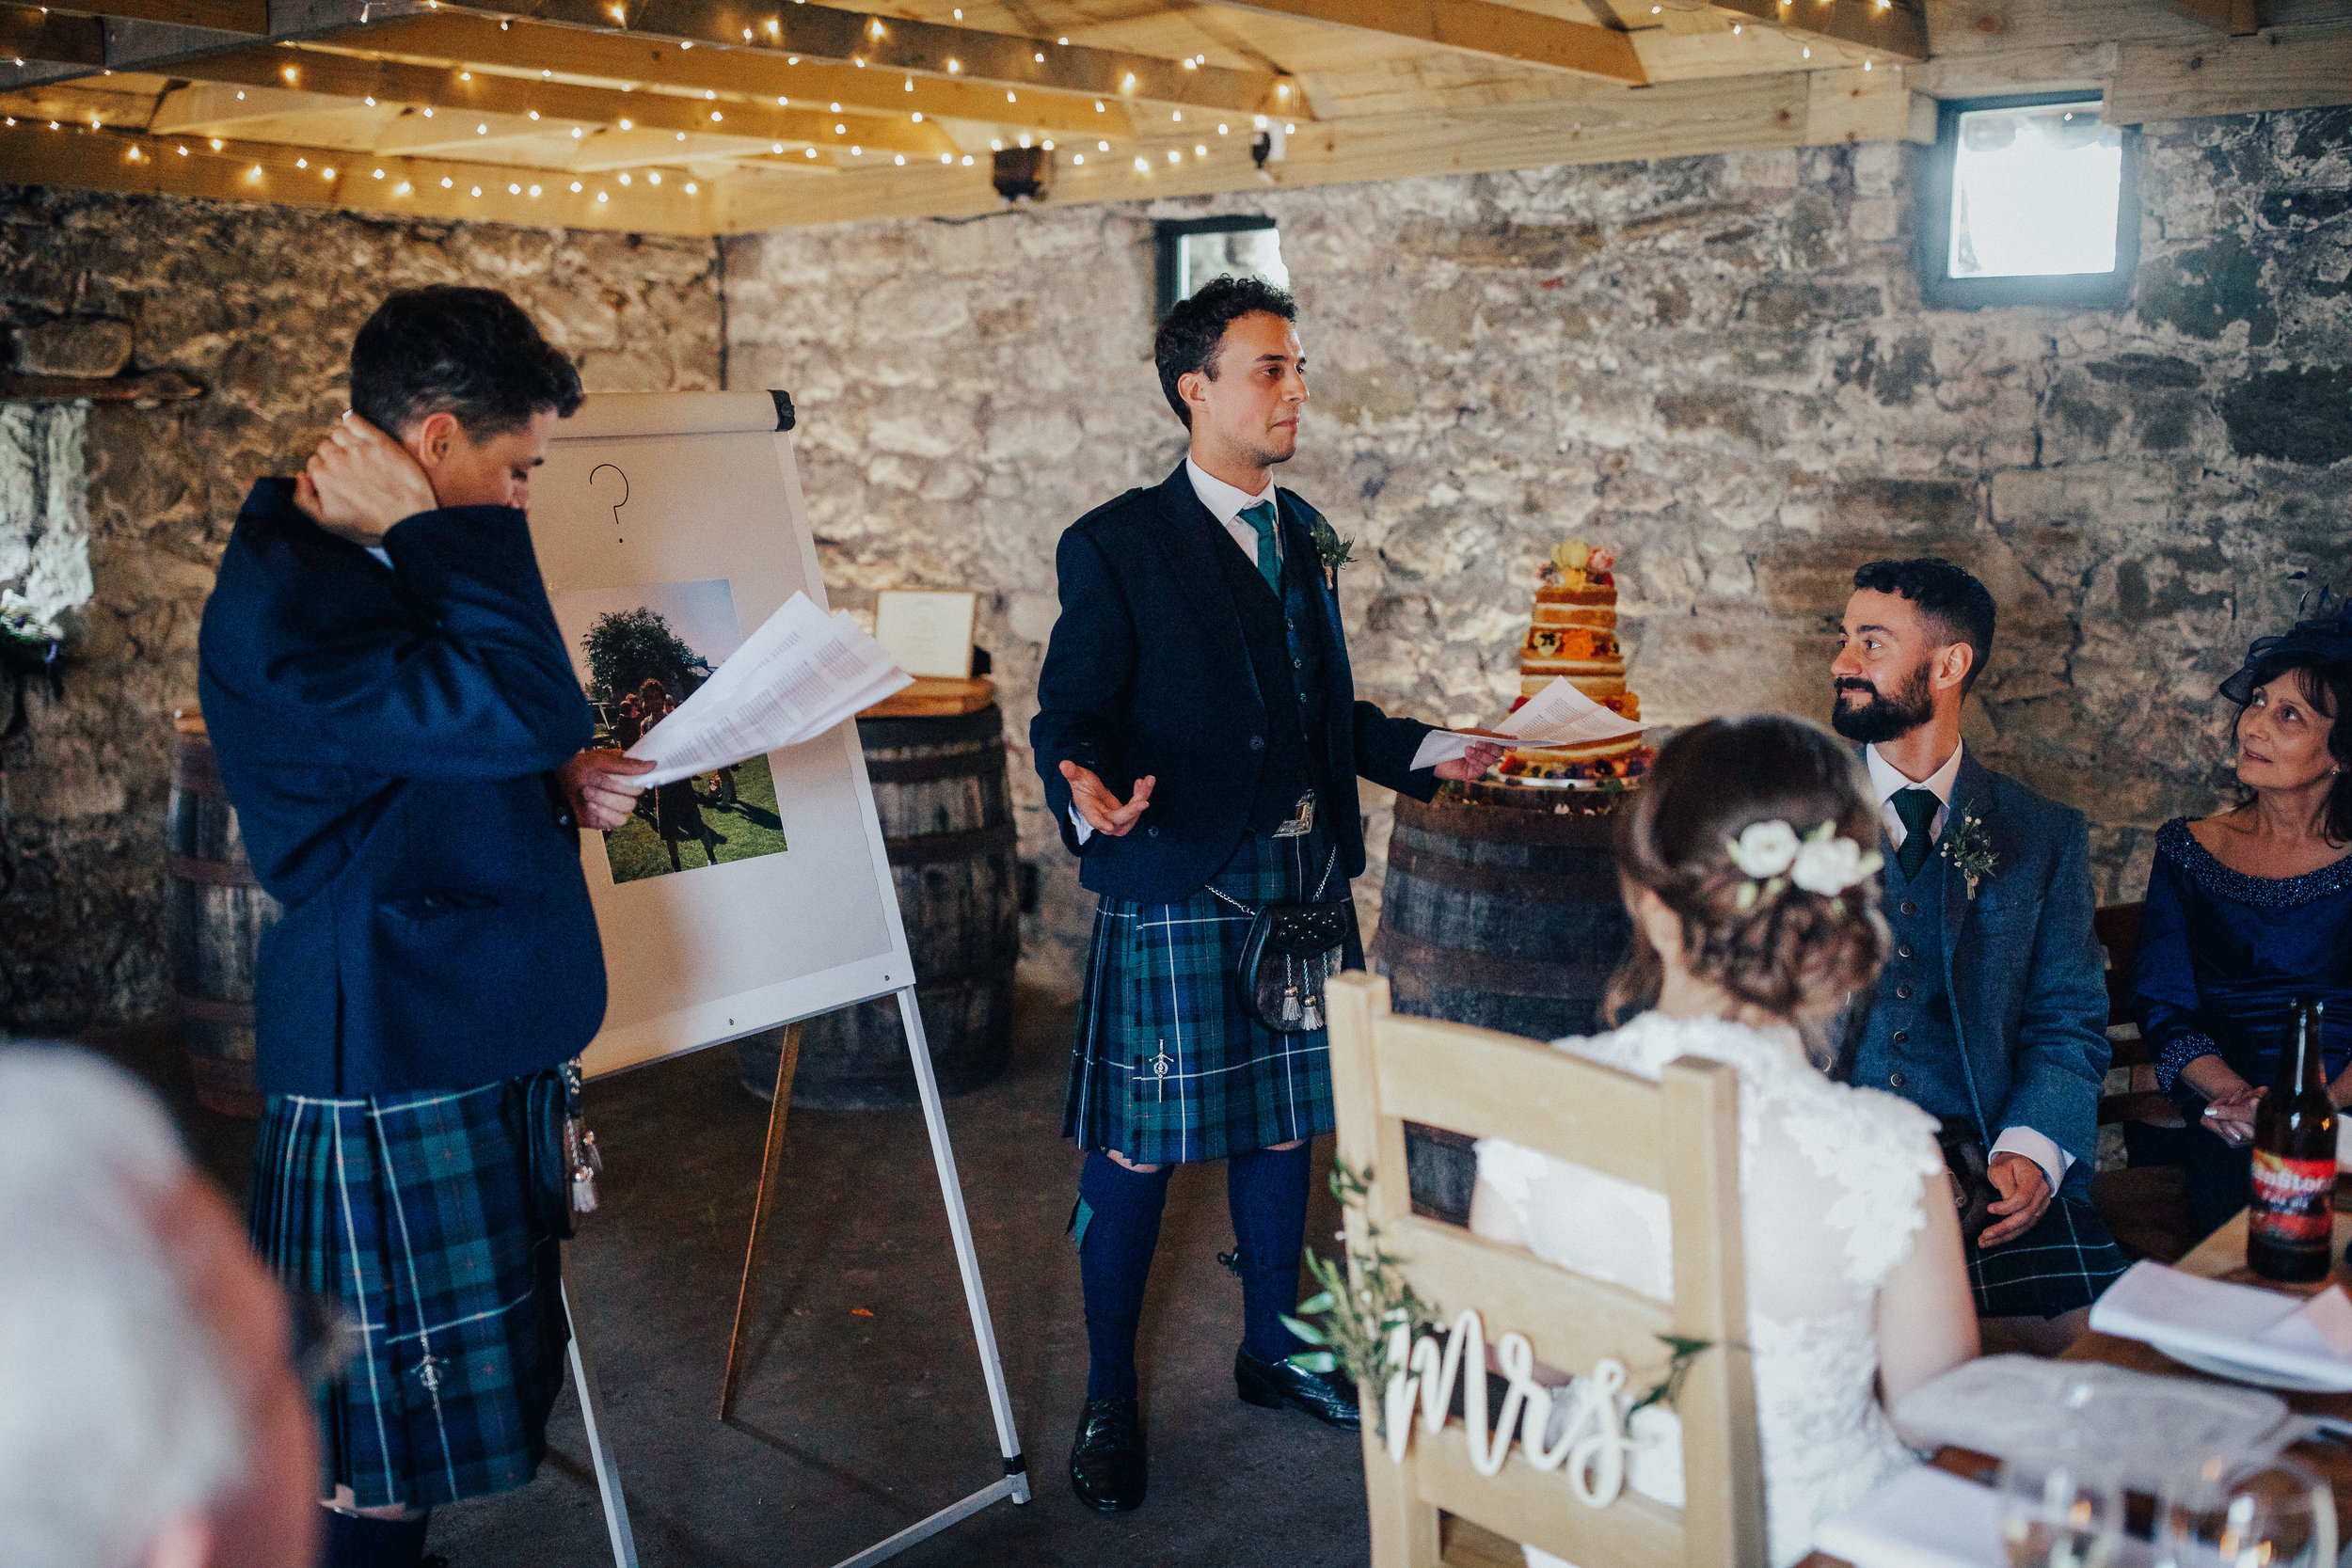 WINDMILL_BARN_DUNFERMLINE_WEDDING_PJ_PHILLIPS_PHOTOGRAPHY_128.jpg